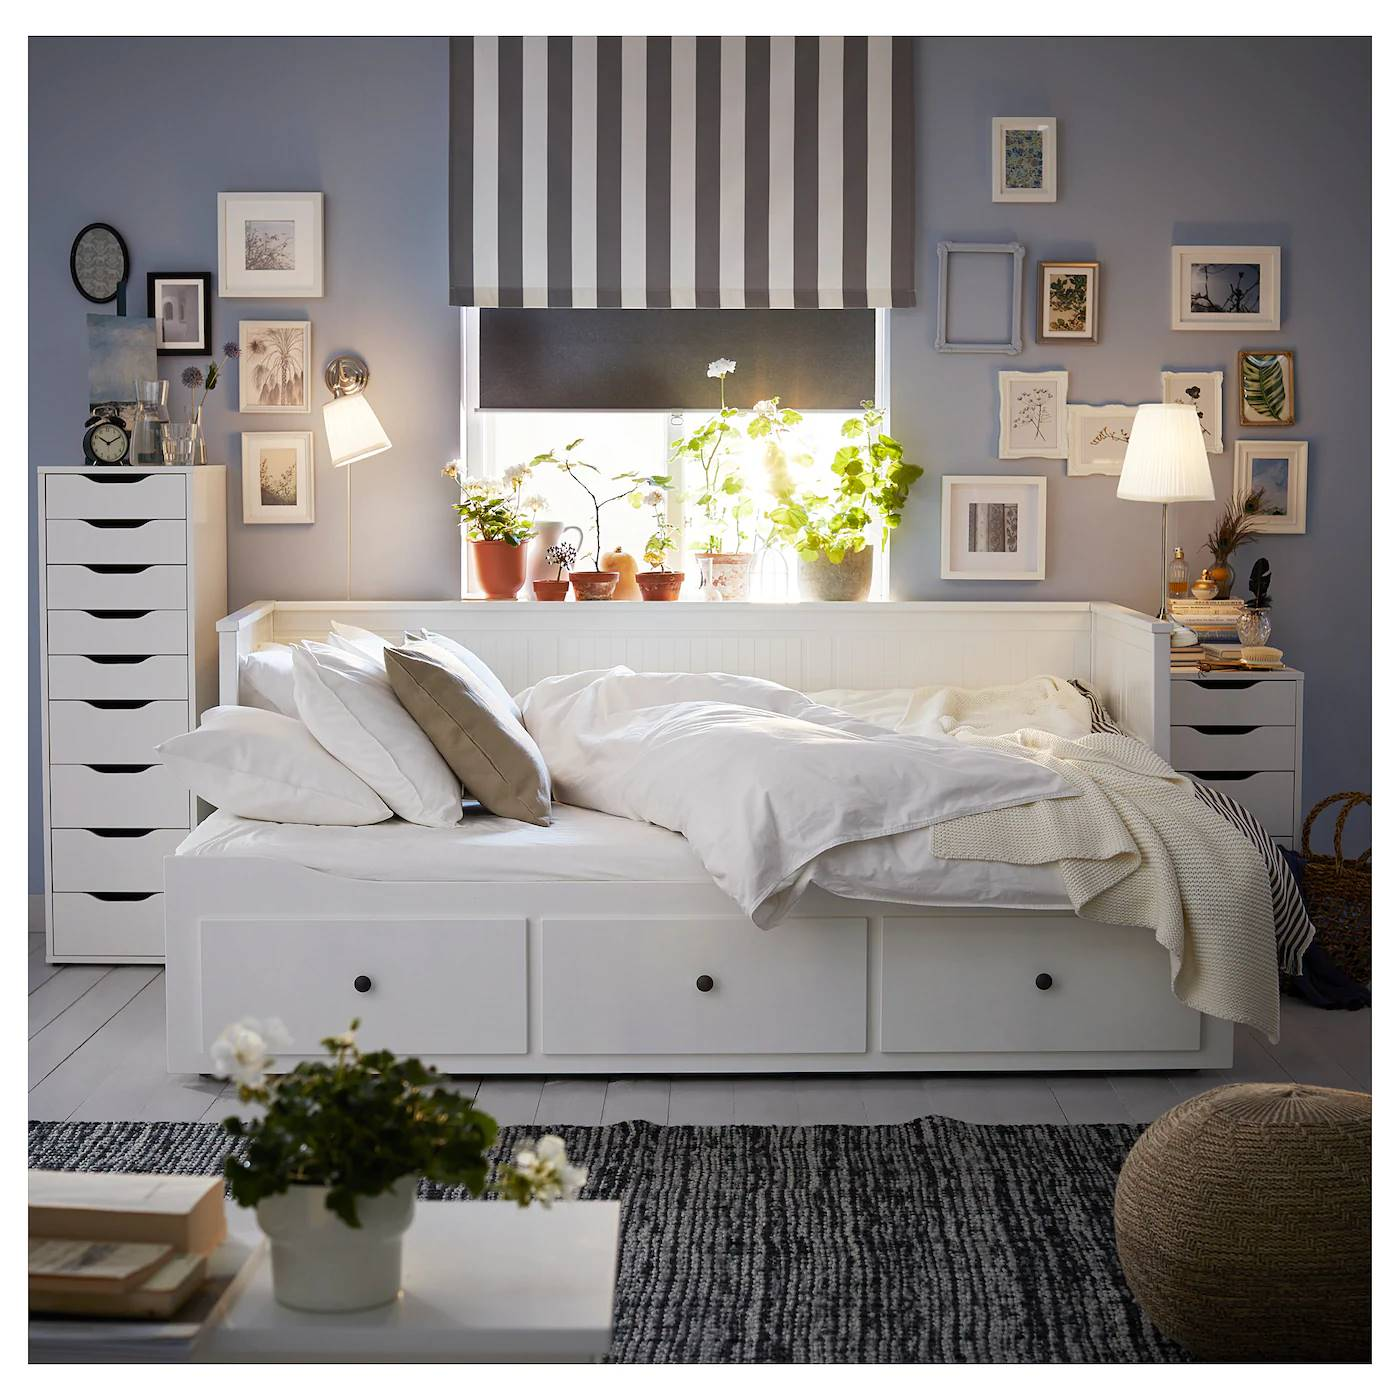 hemnes-daybed-frame-with-3-drawers_ikea. El diván Hemnes